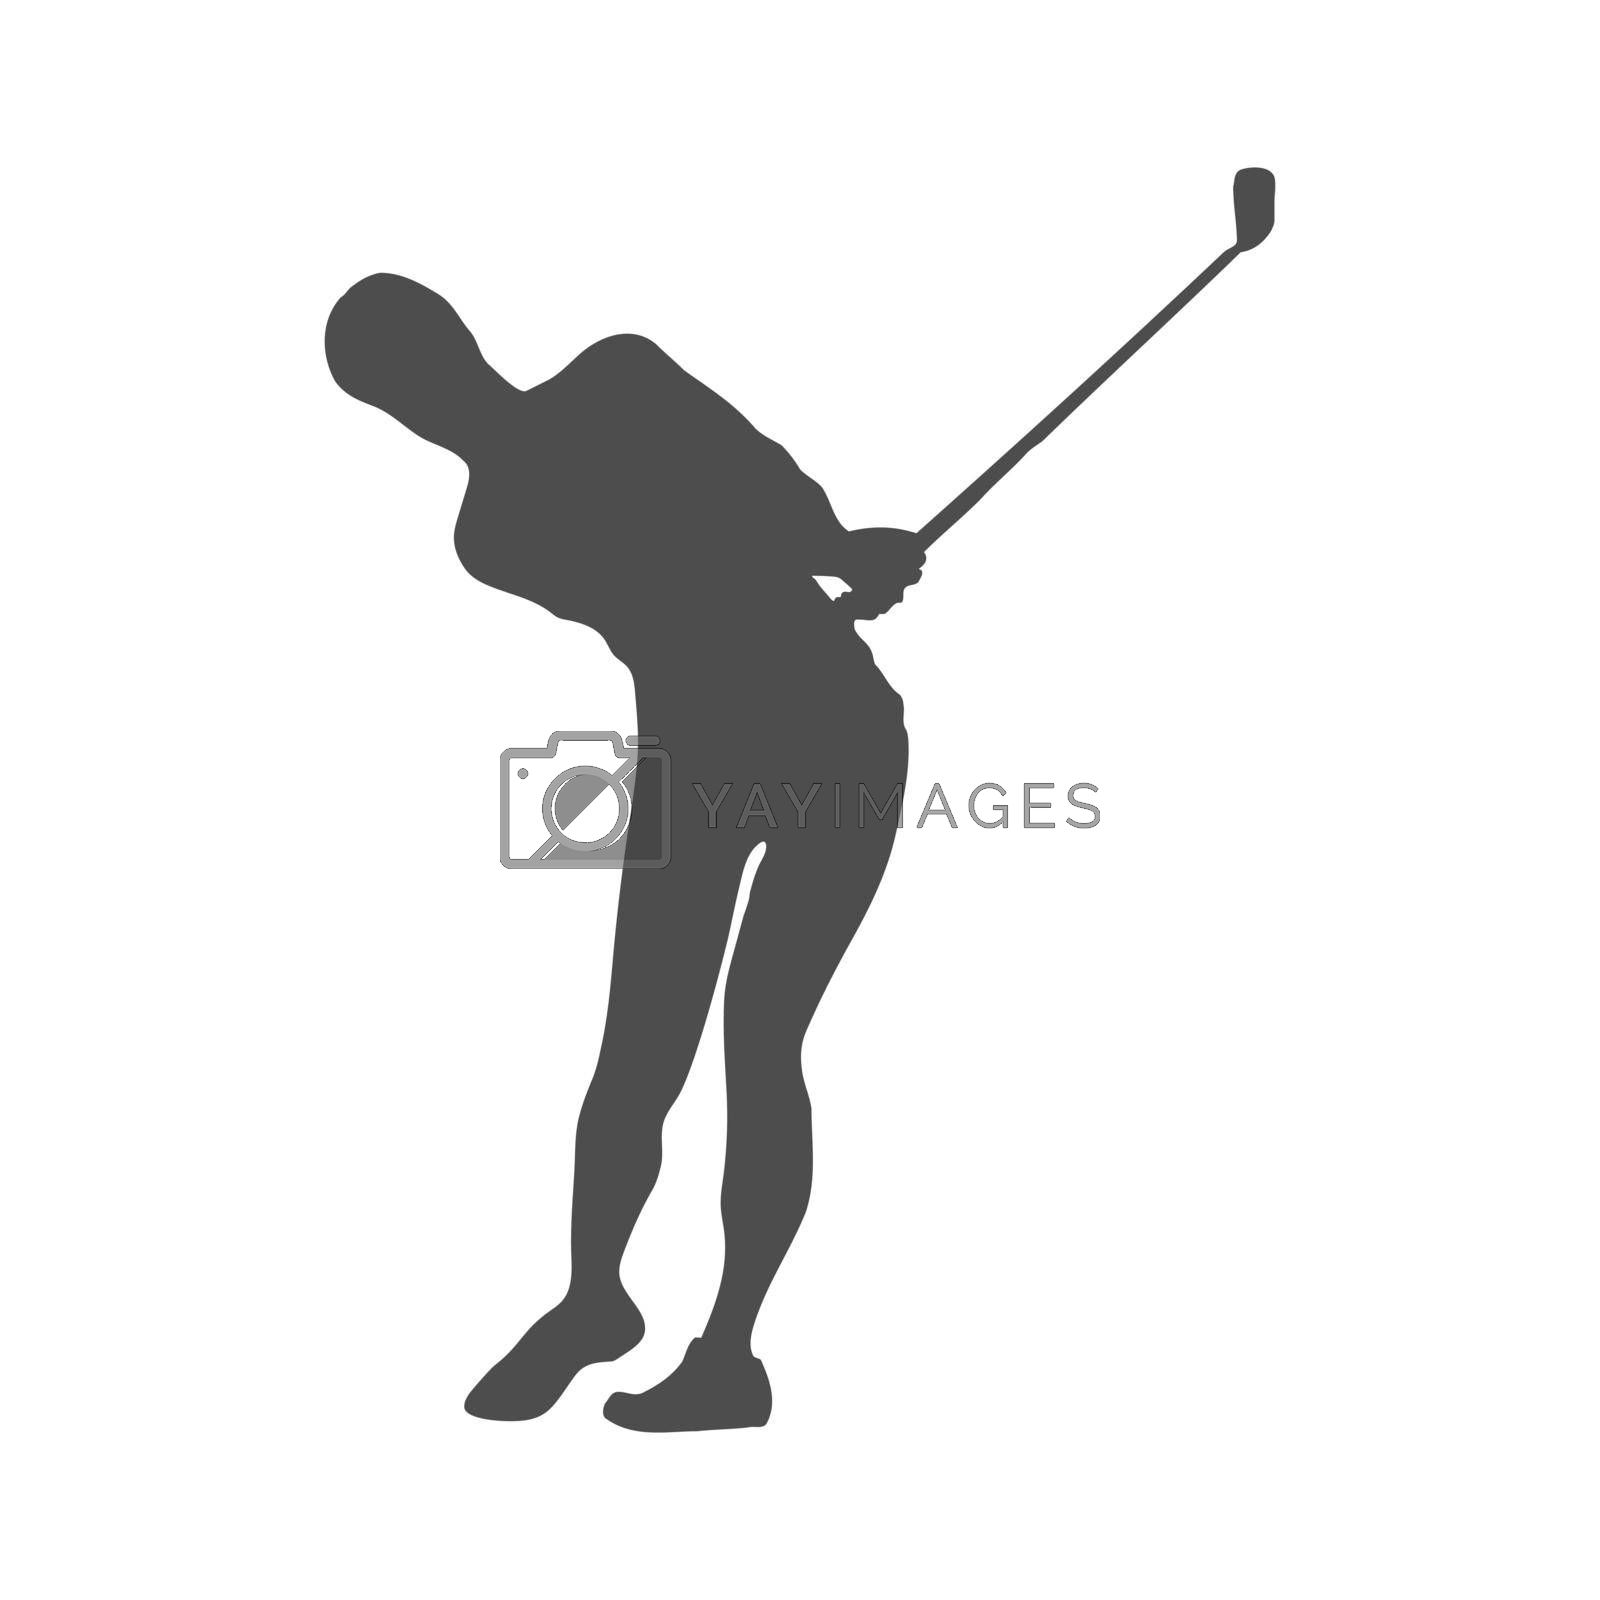 Royalty free image of Golf. Solid silhouette of a man, a golfer. Silhouette of a golfer athlete by Grommik